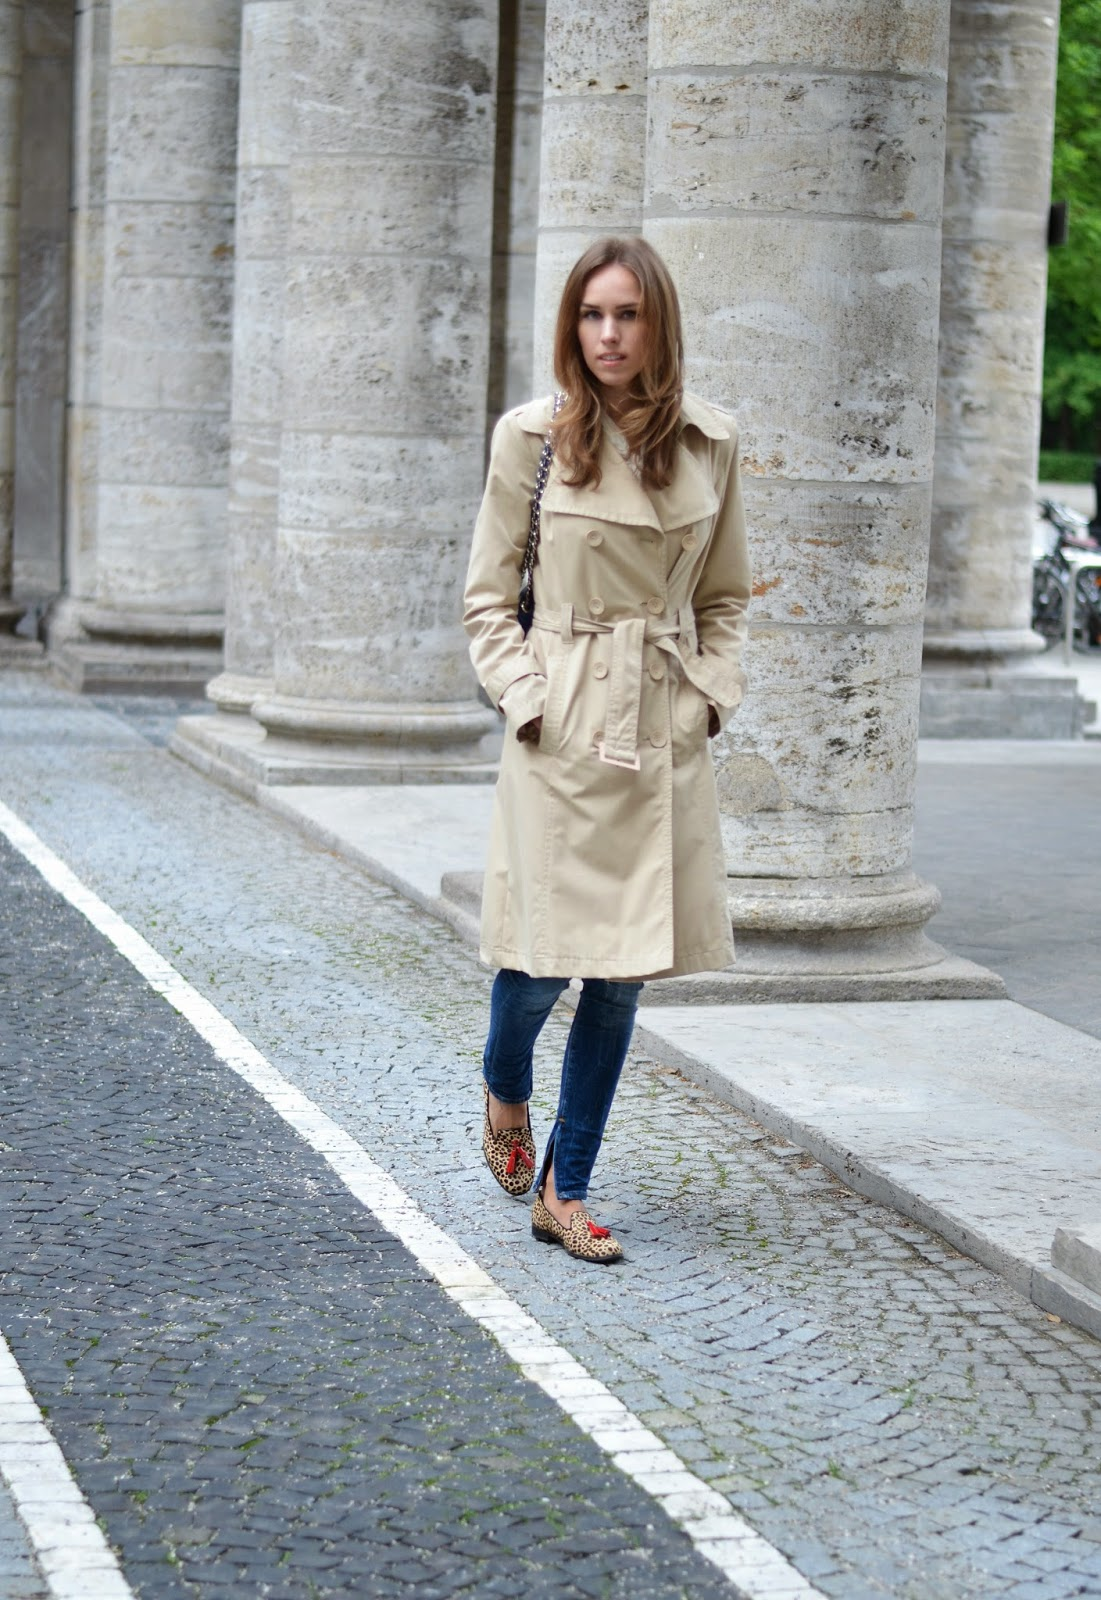 kristjaana mere classic trench coat outfit summer